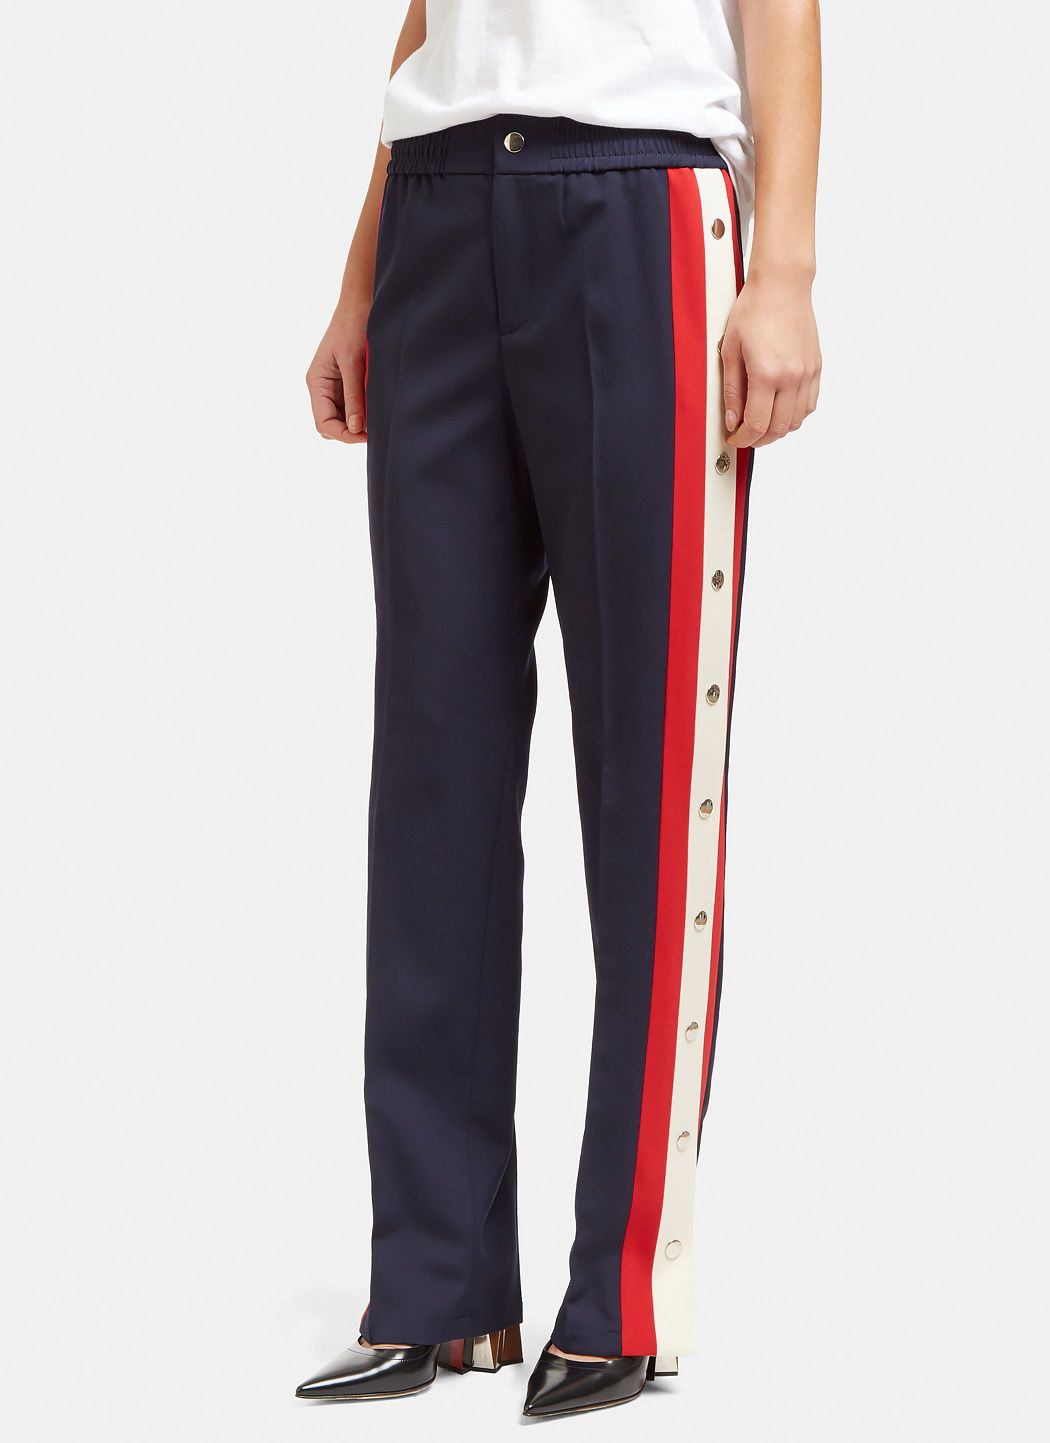 bfe95ad82e7 GUCCI Women S Striped Popstud Seam Track Pants In Navy.  gucci  cloth